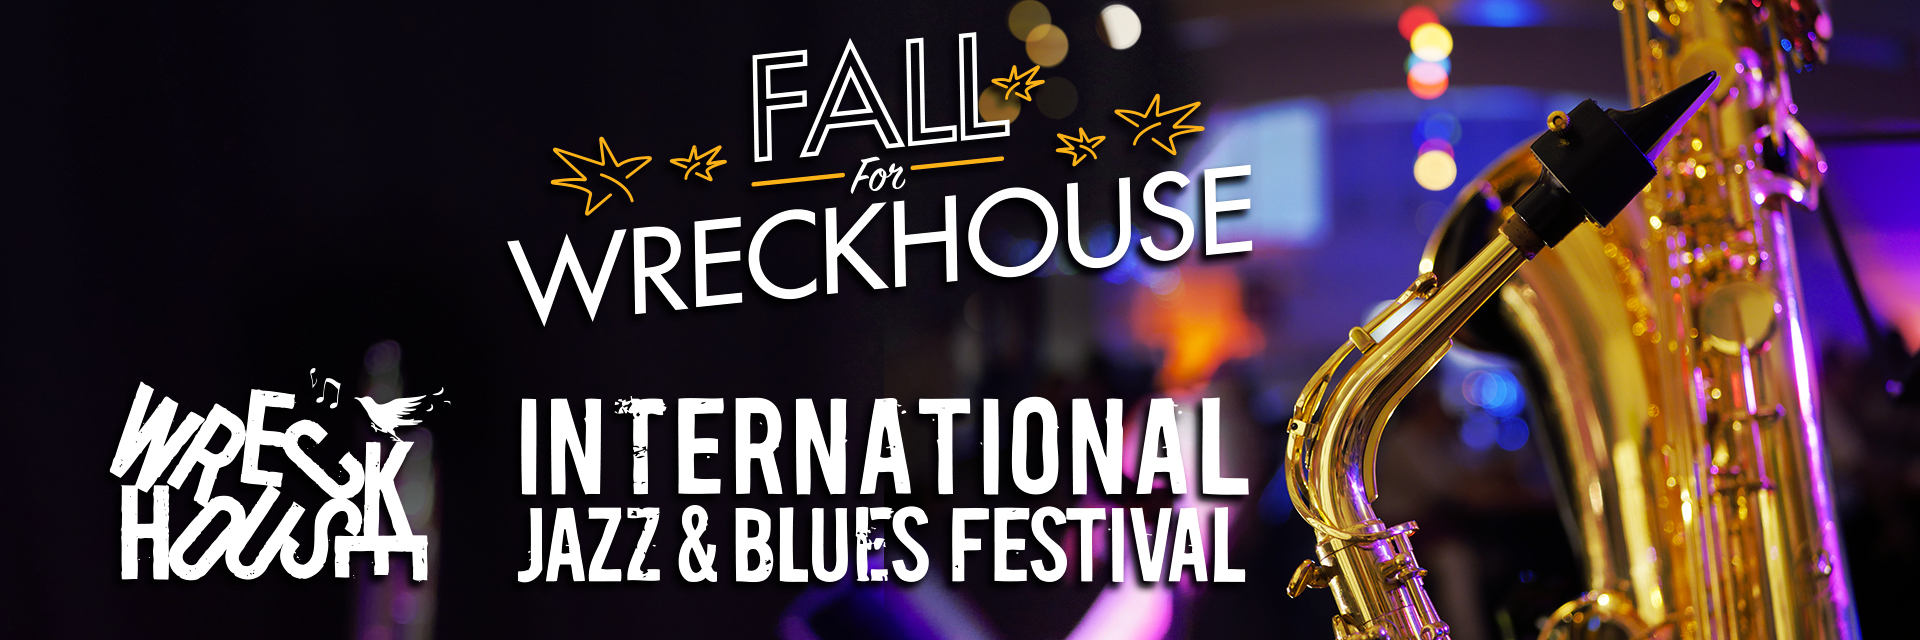 Fall For Wreckhouse